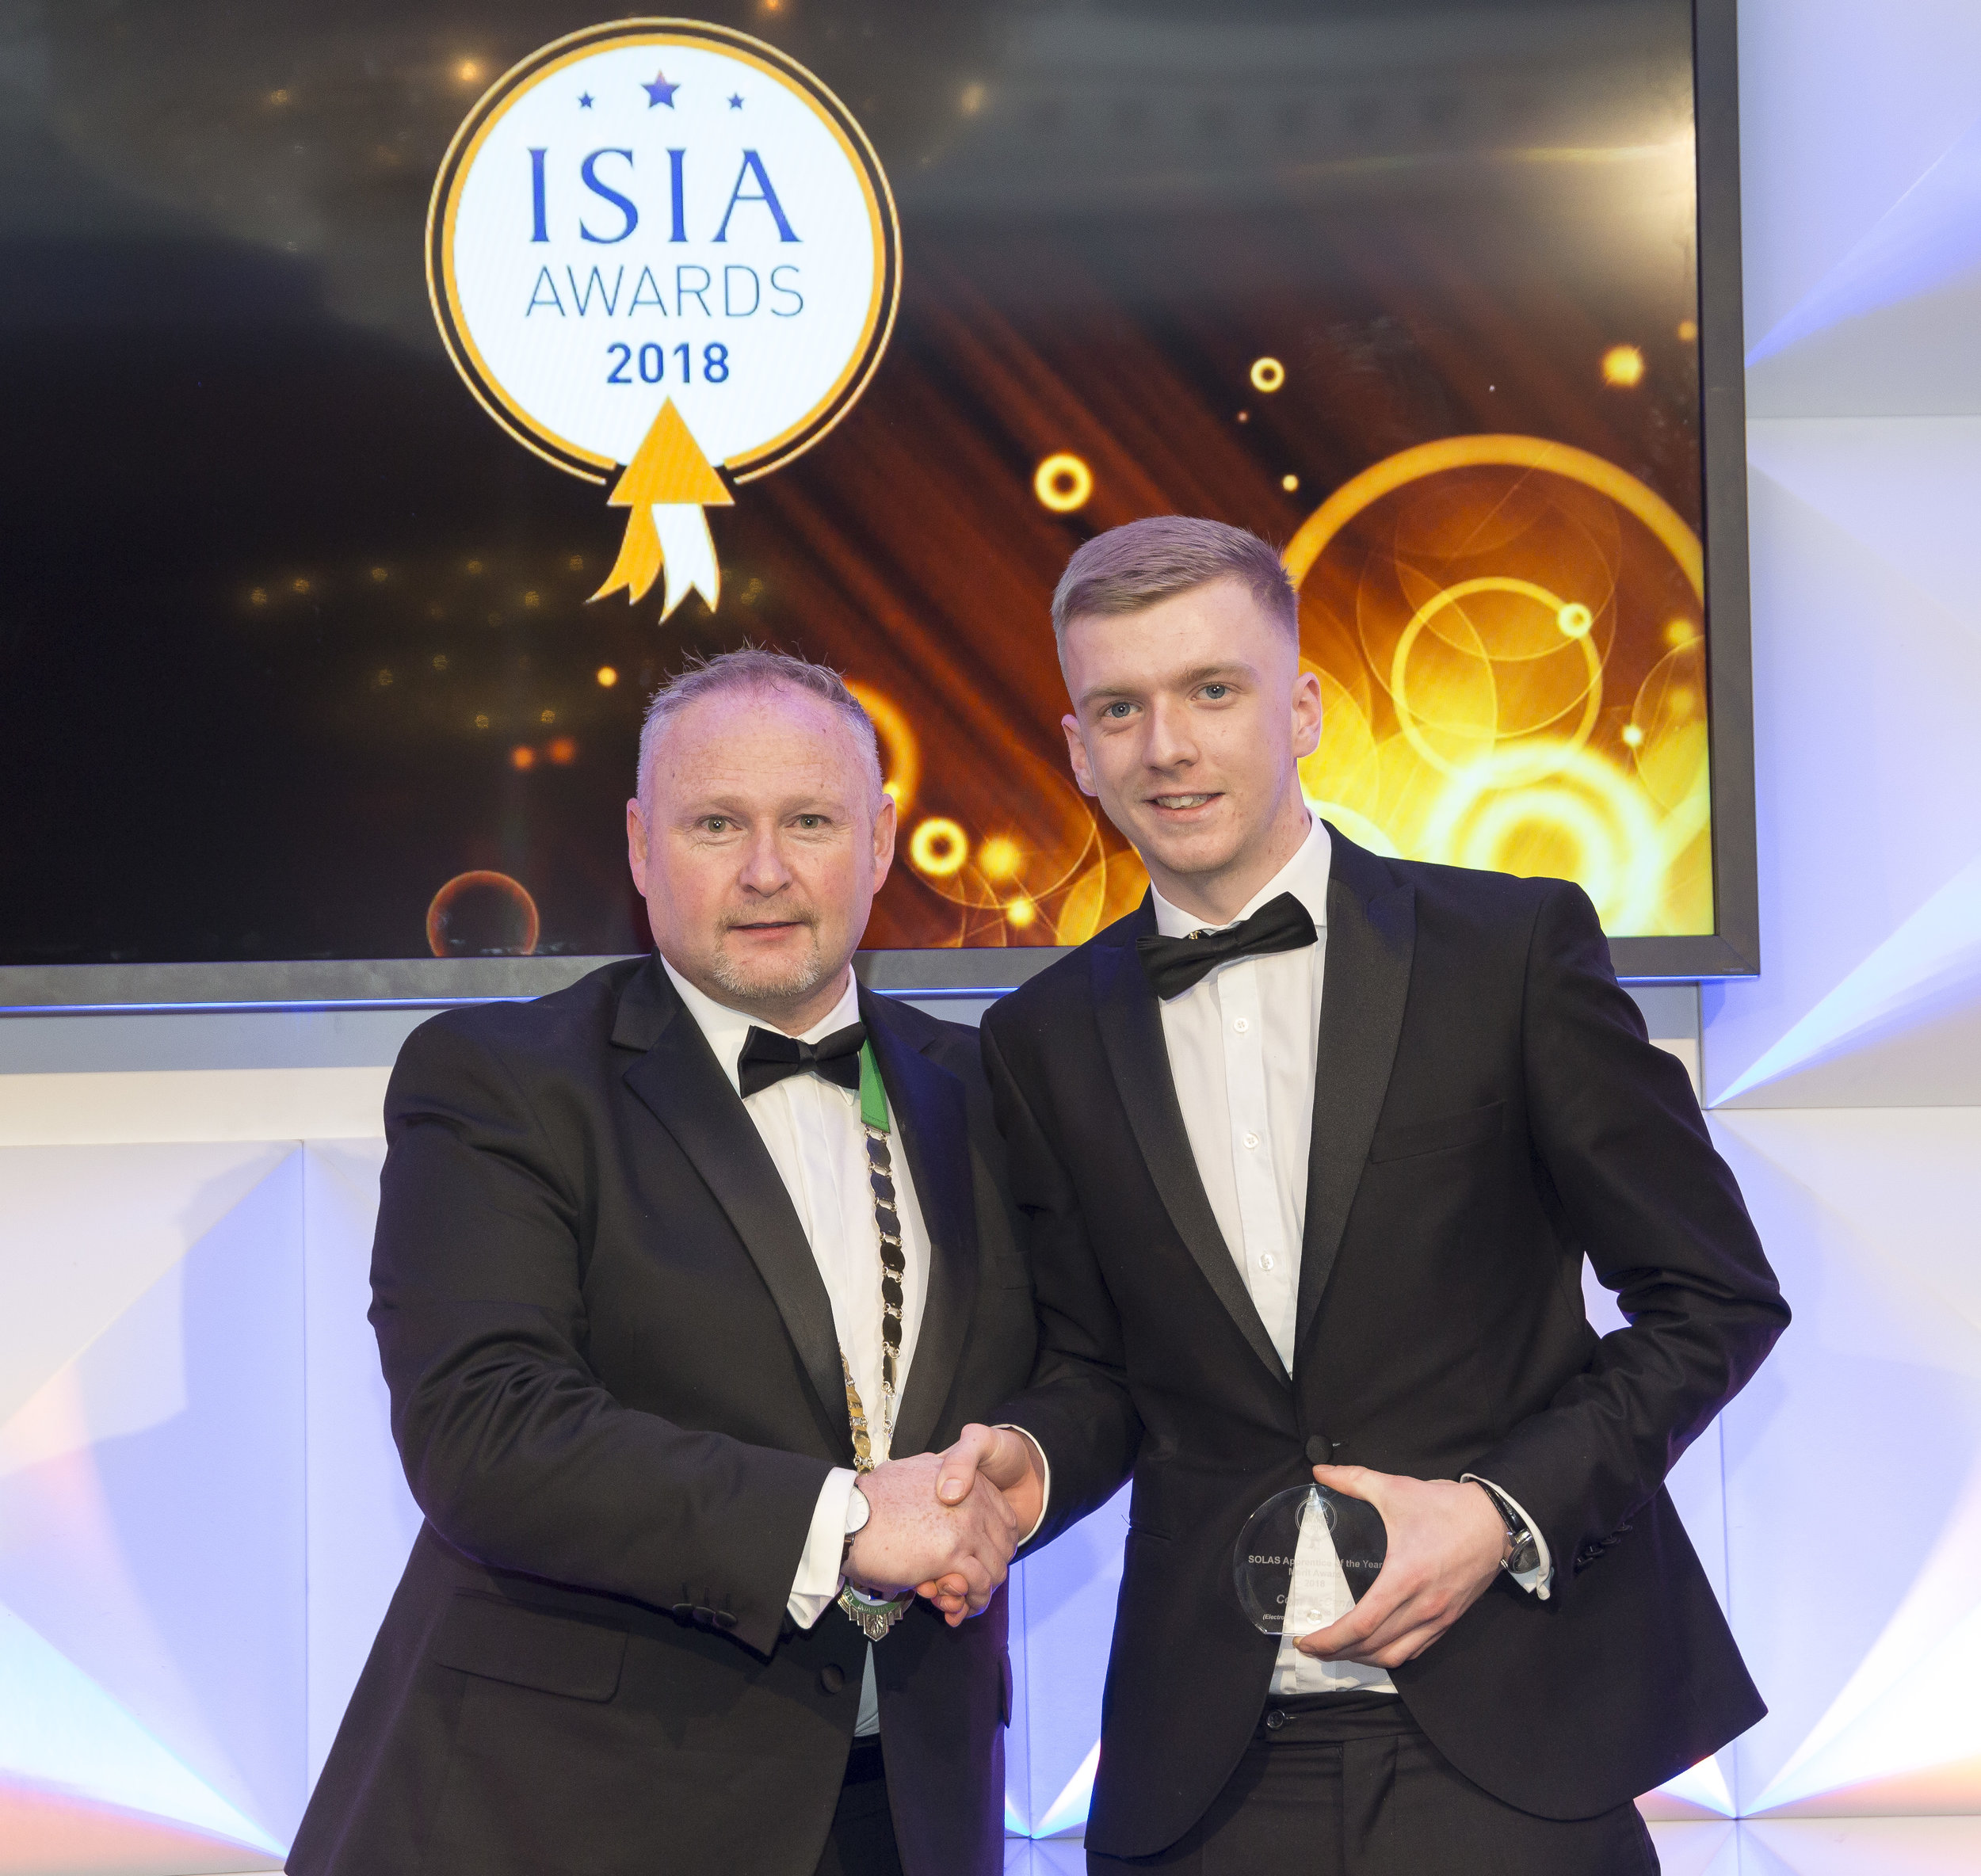 Colm McCann receiving his award for 'Solas Apprentice of the Year'